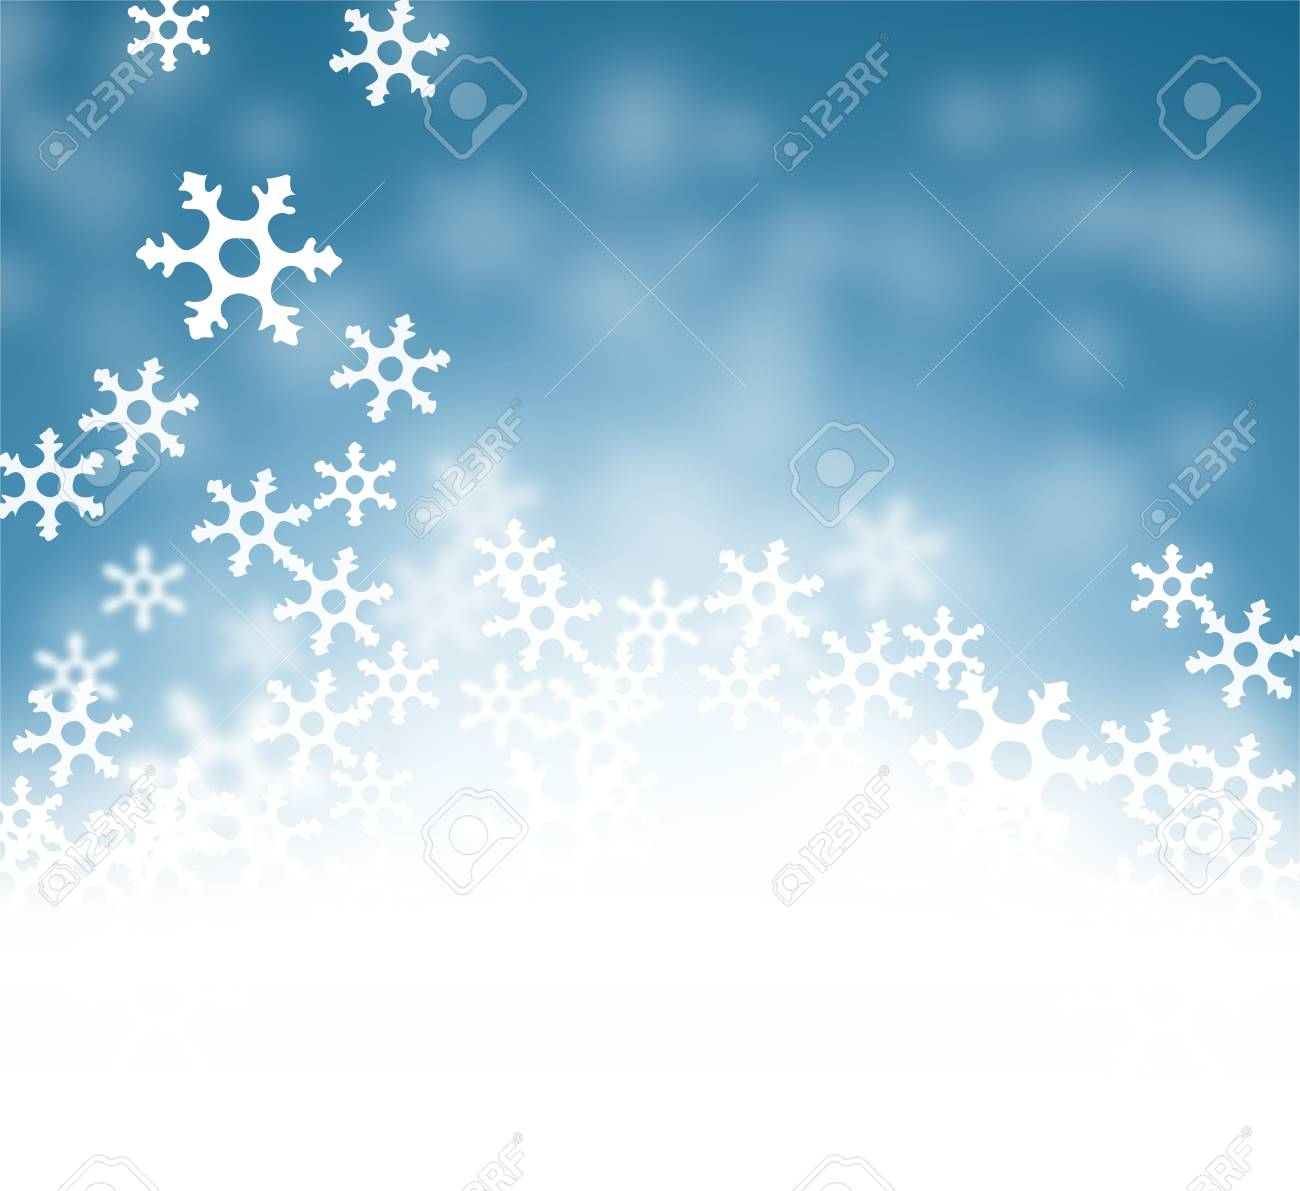 Merry Christmas Happy New Year abstract blue Background wallpaper..